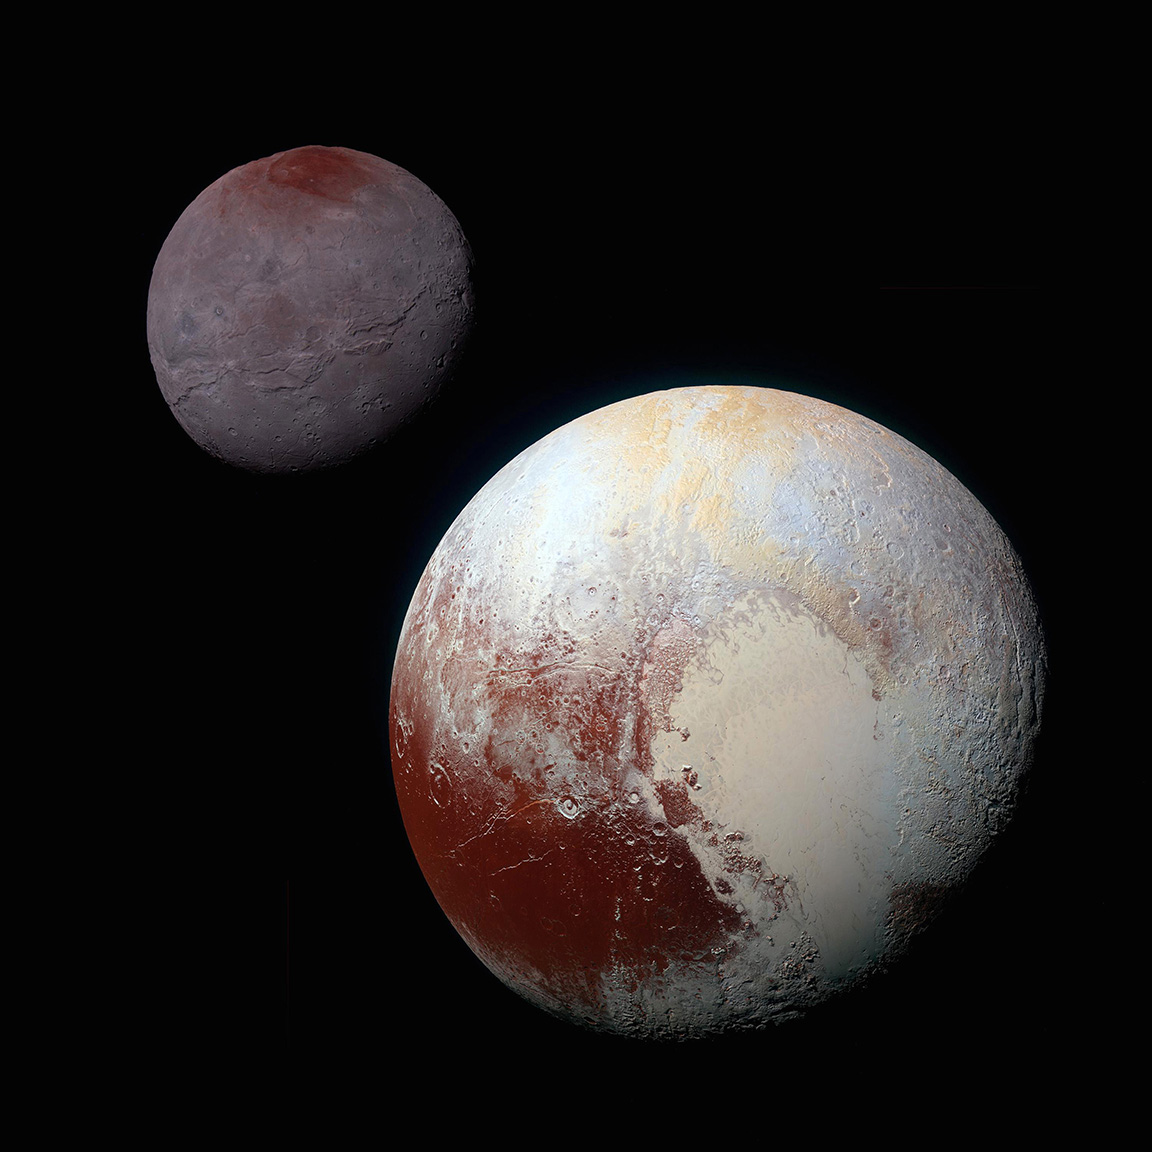 Pluto and Charon lie 3.1 billion miles from Earth, a long way for light to travel. We see them as they were more than 4 hours ago. - Image Credit: NASA/JHUAPL/SwRI